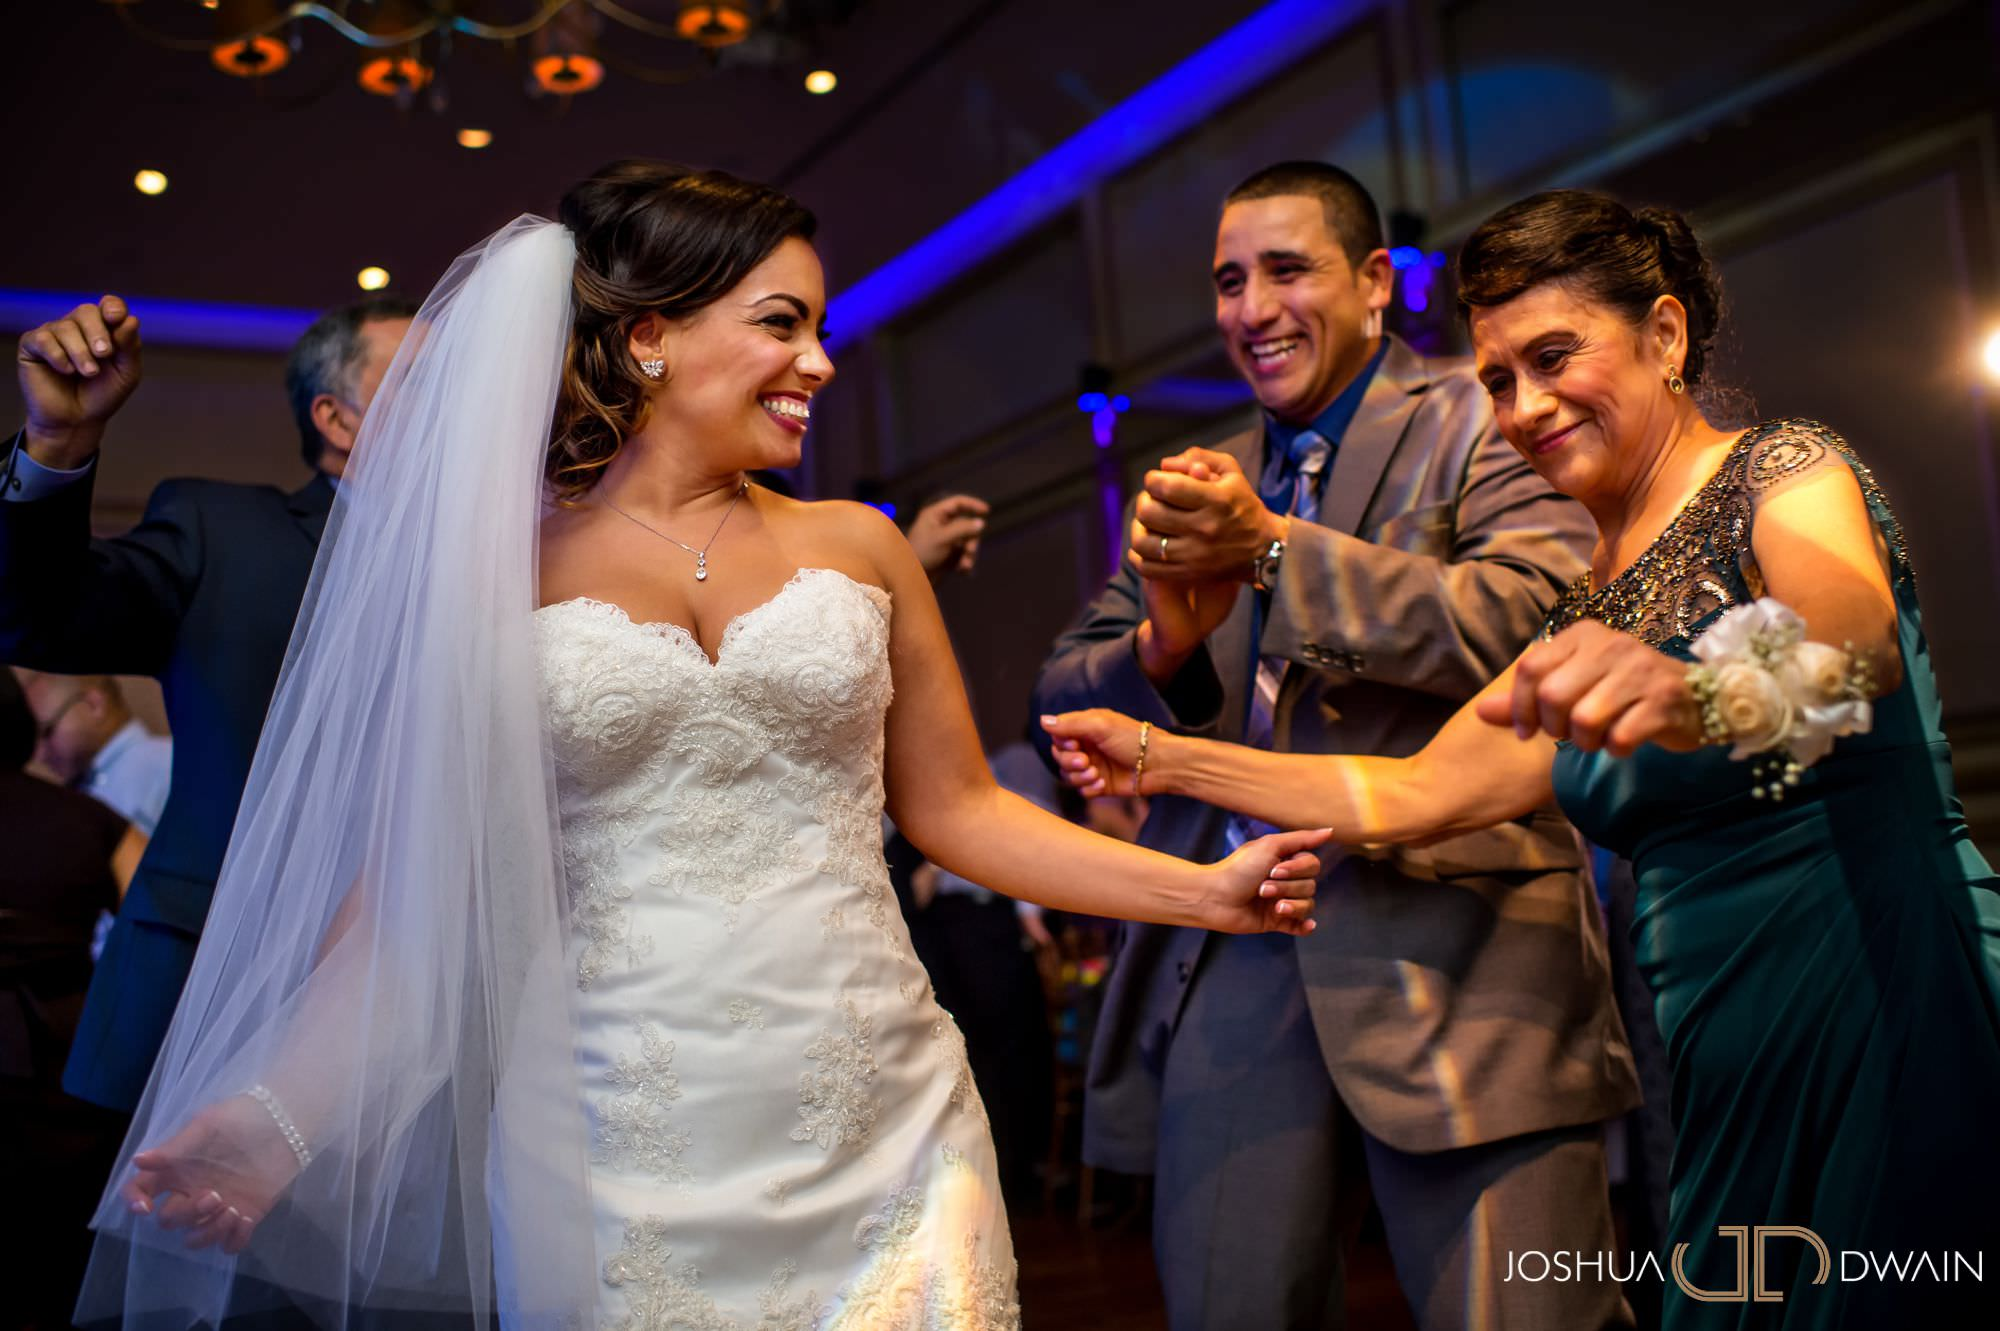 Nicole & Maurico's wedding at the Tosca Marquee in the Bronx, NY